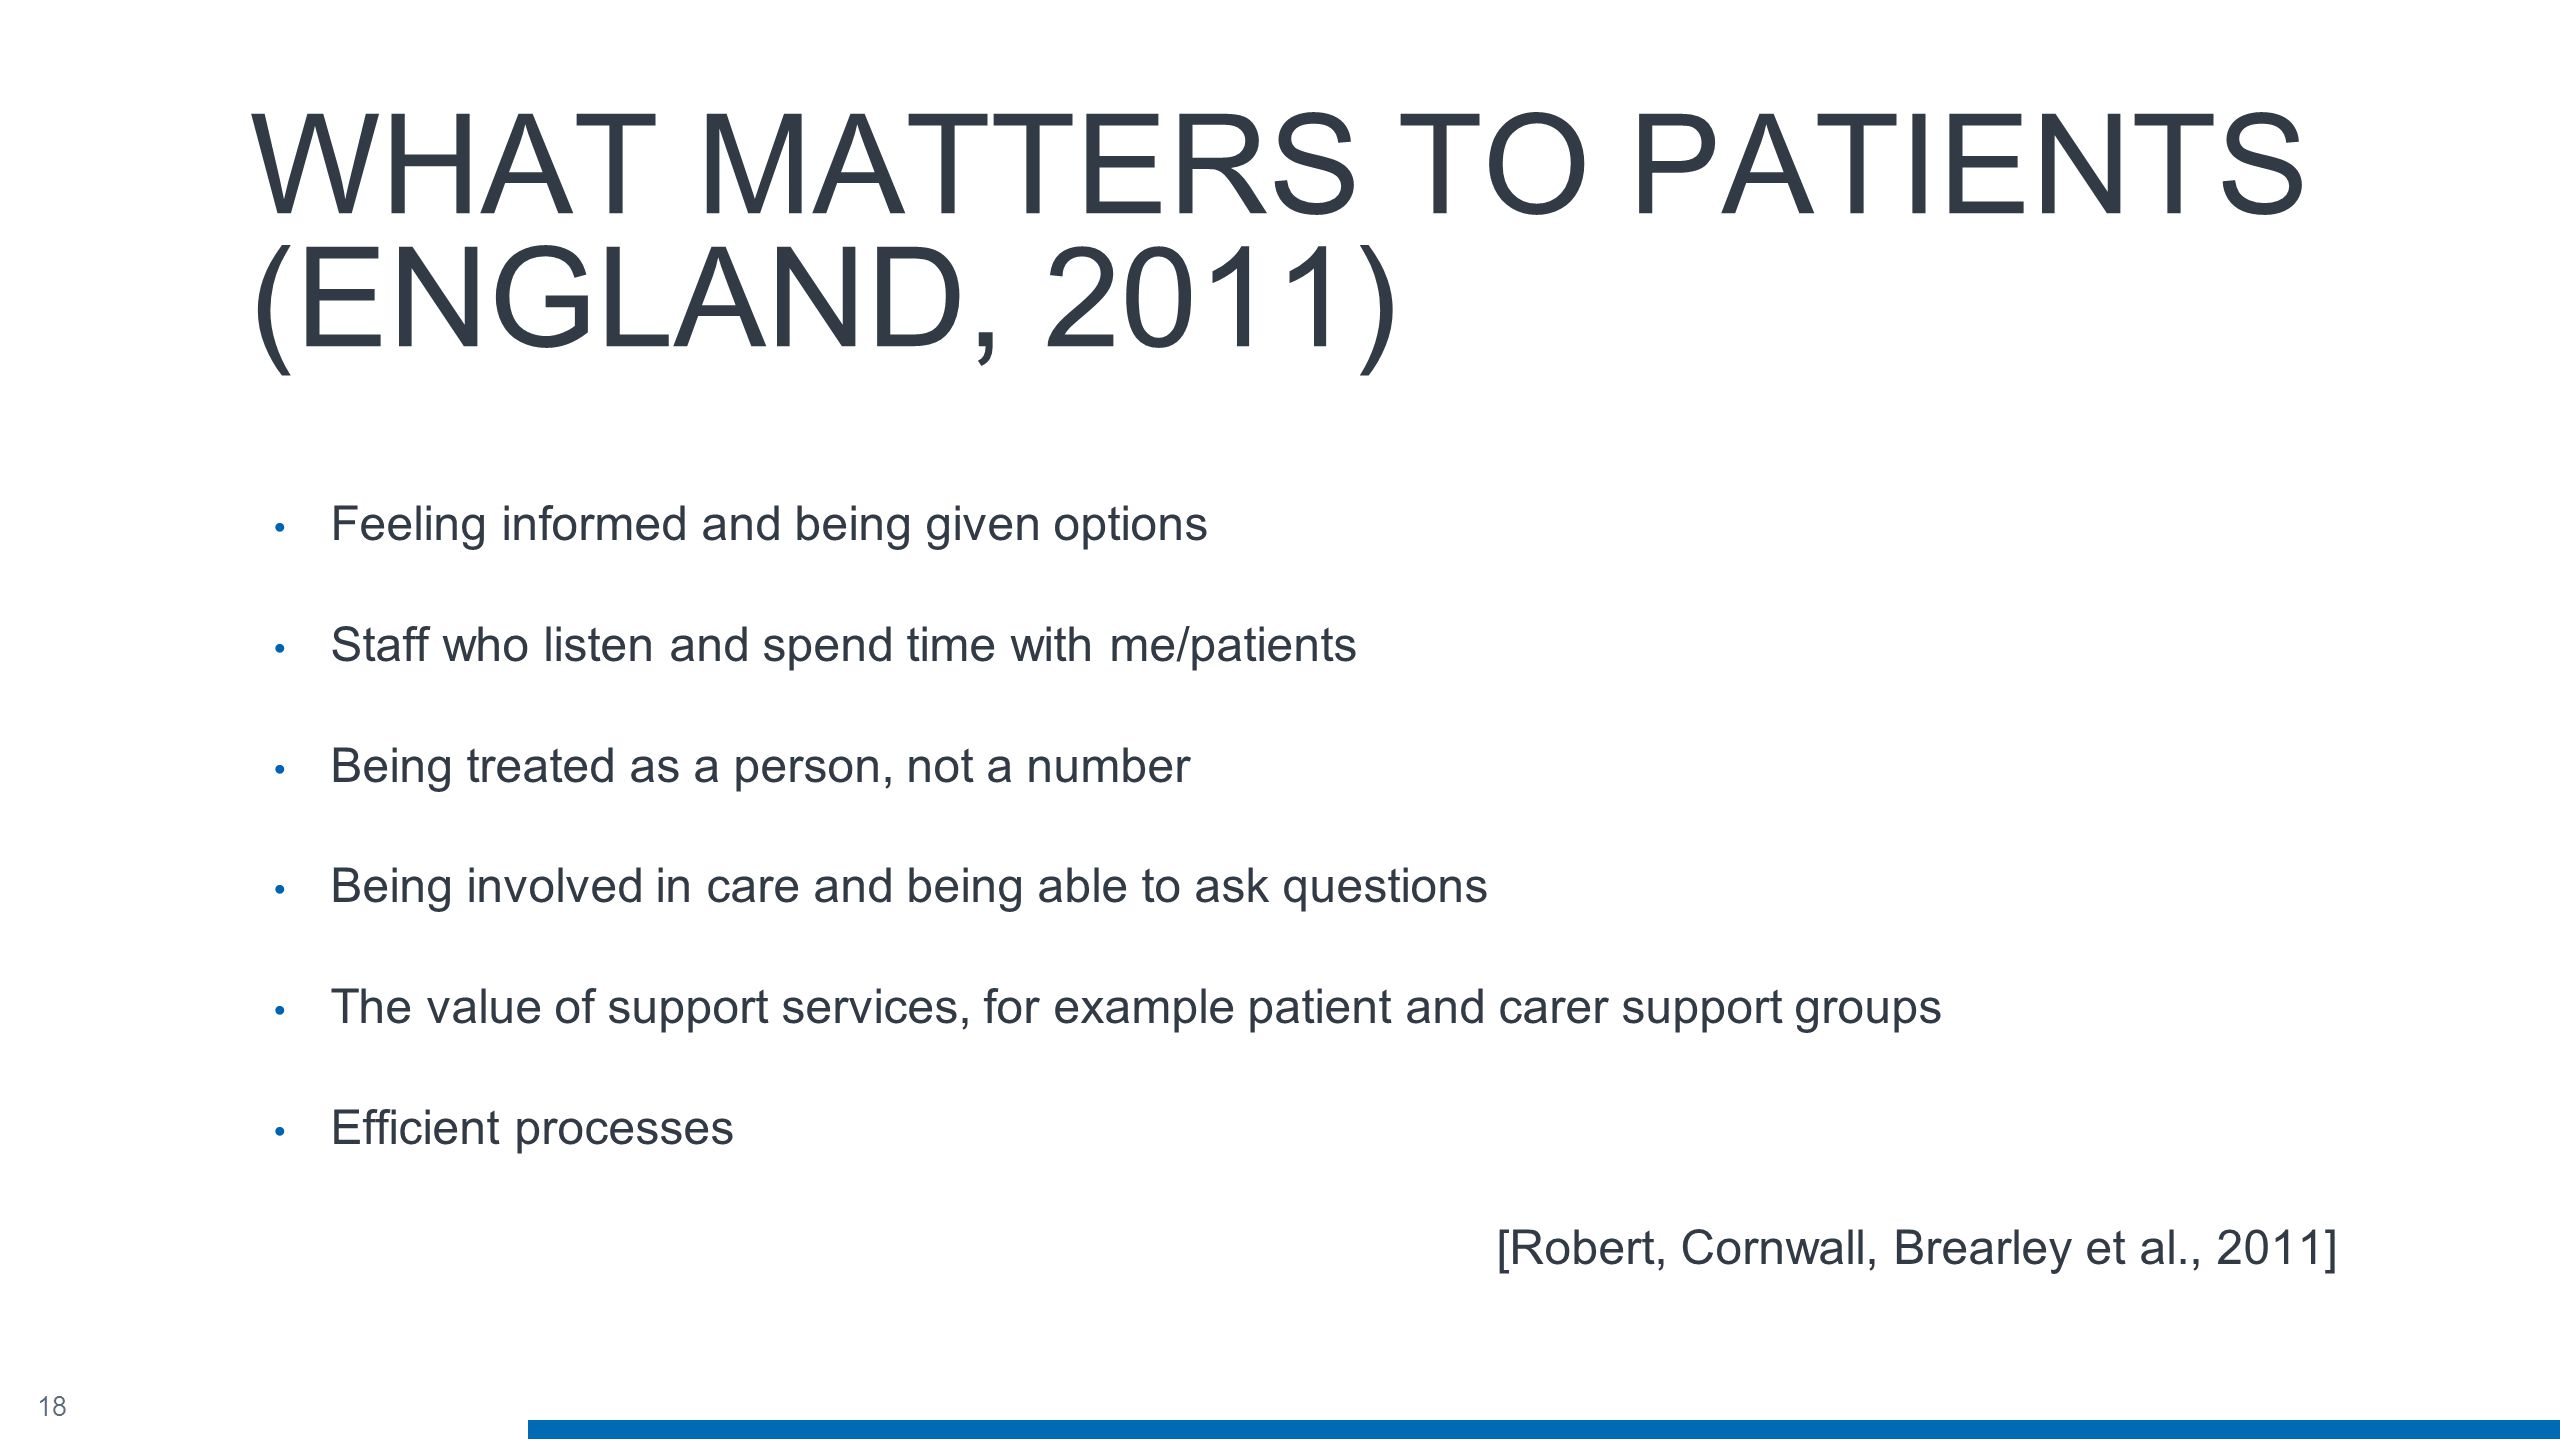 18 WHAT MATTERS TO PATIENTS (ENGLAND, 2011) Feeling informed and being given options Staff who listen and spend time with me/patients Being treated as a person, not a number Being involved in care and being able to ask questions The value of support services, for example patient and carer support groups Efficient processes [Robert, Cornwall, Brearley et al., 2011]